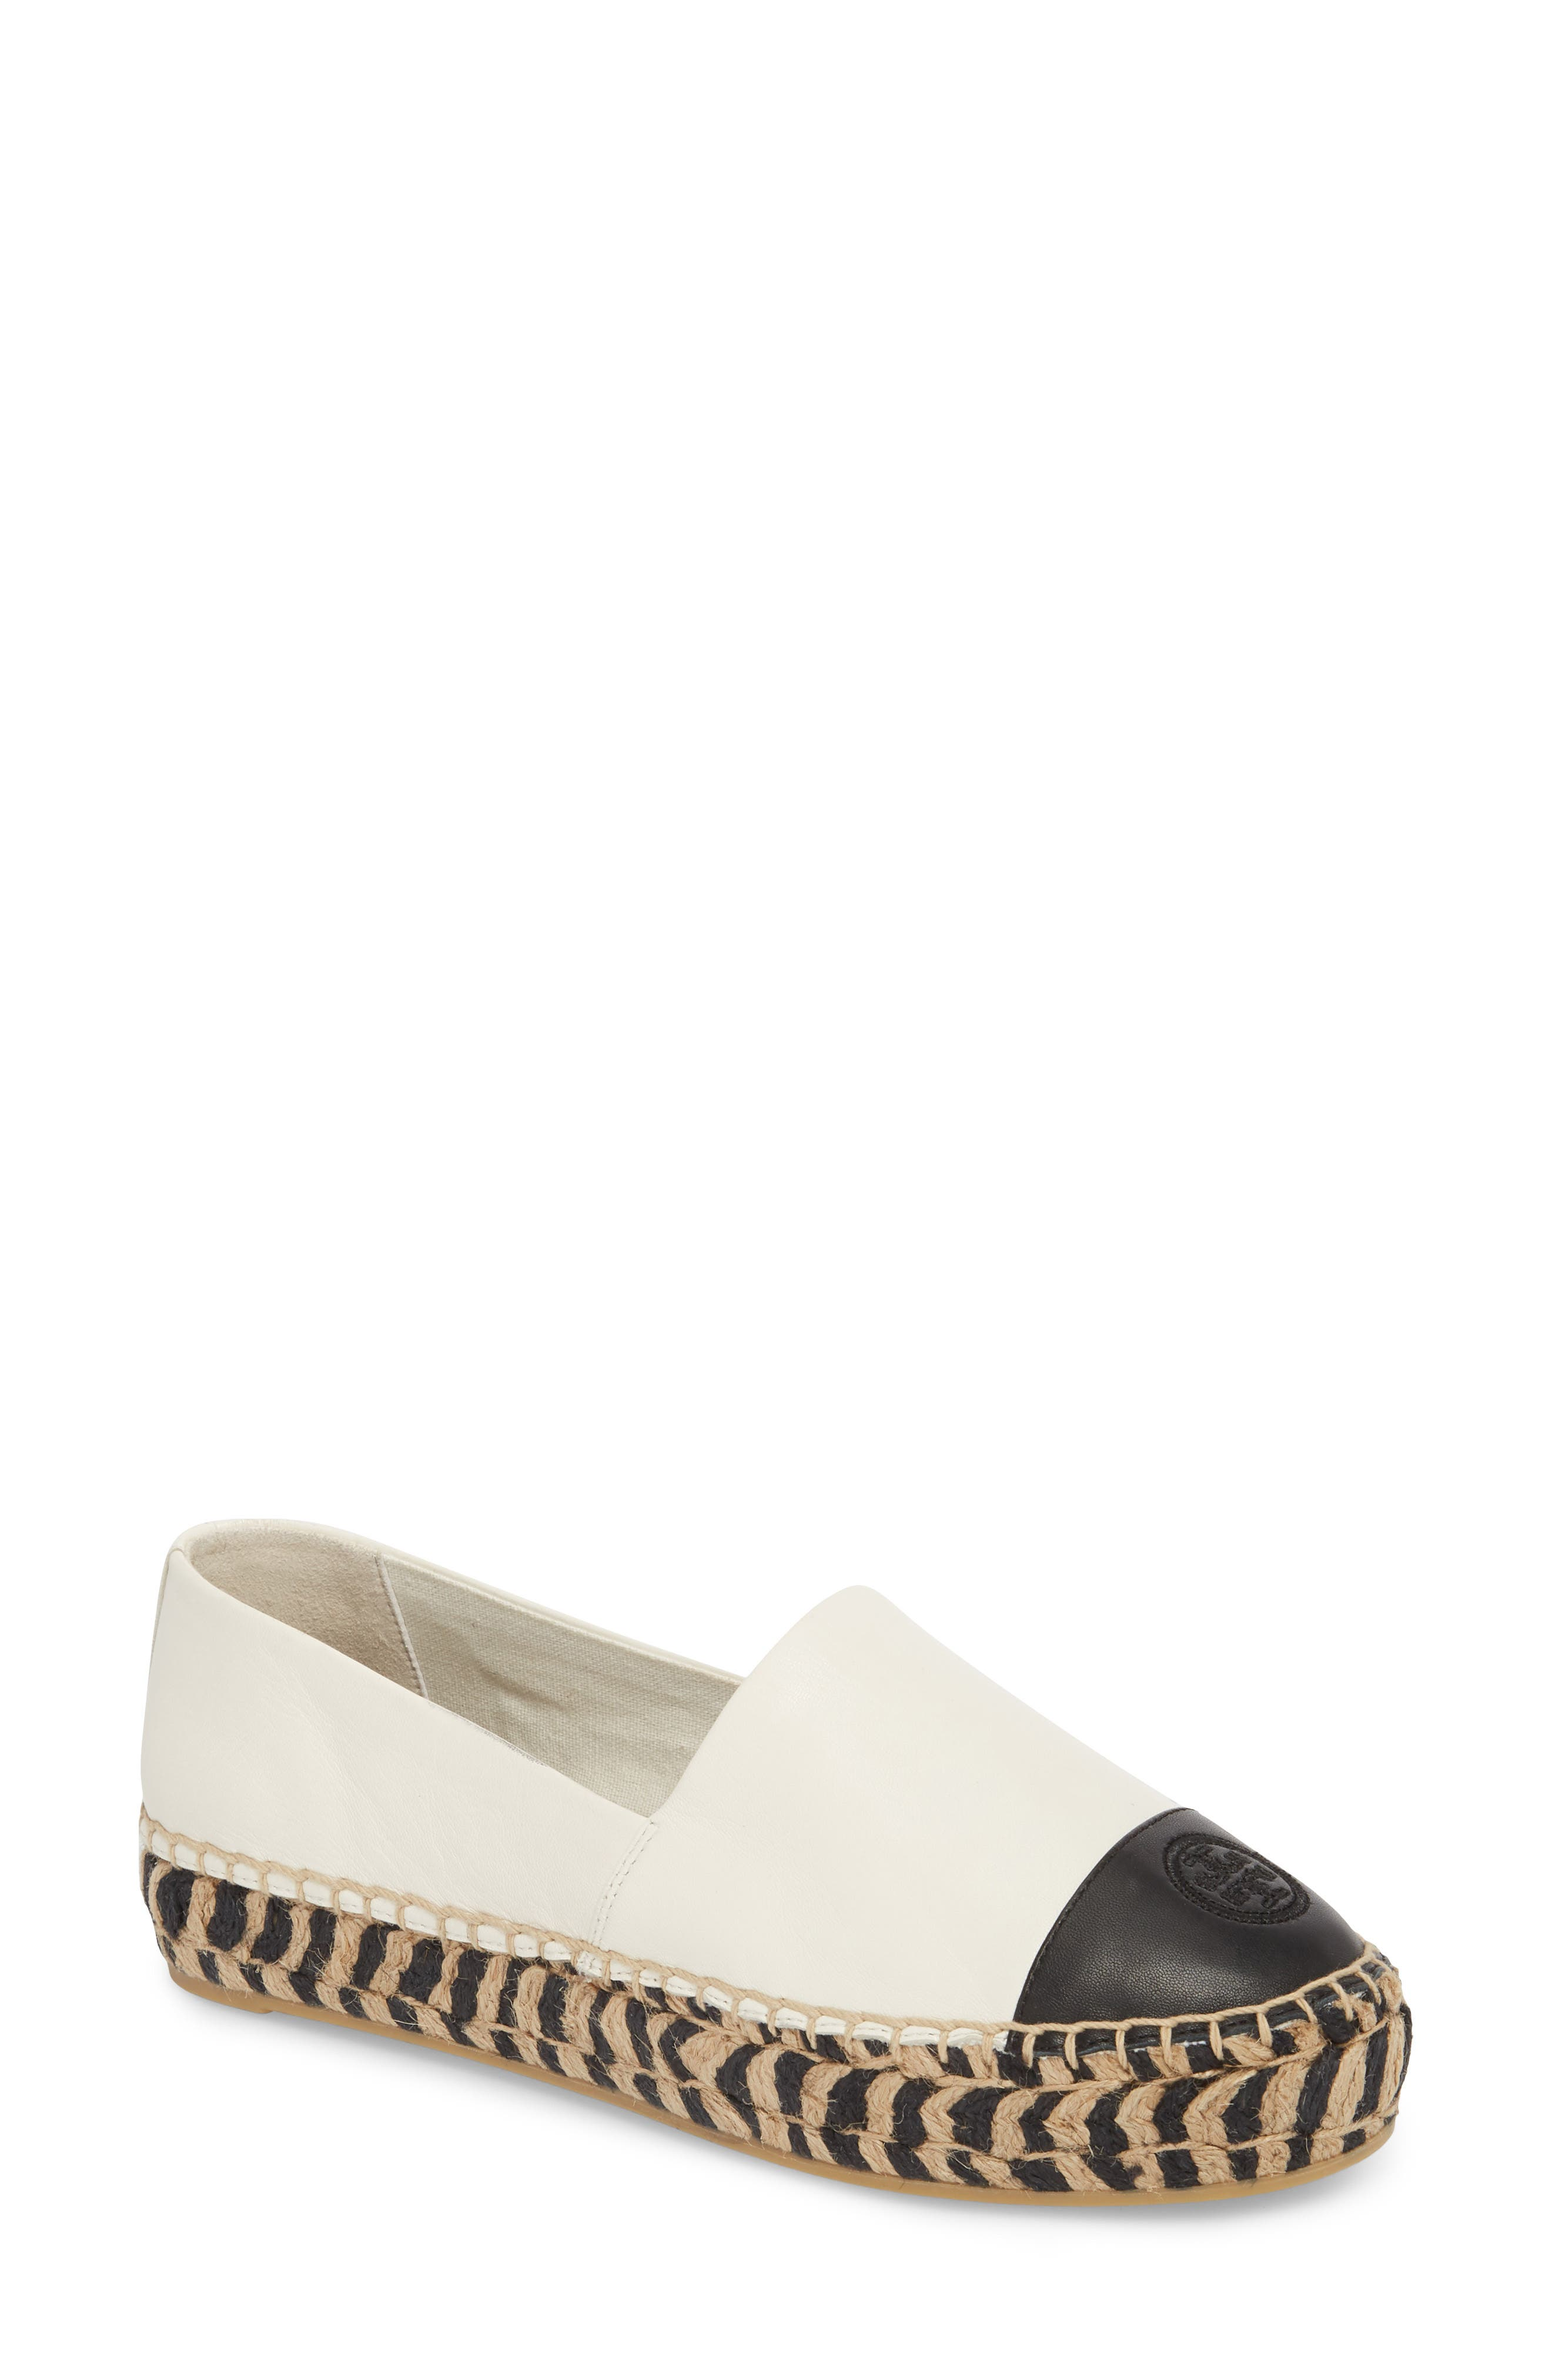 TORY BURCH, Colorblock Platform Espadrille, Main thumbnail 1, color, PERFECT IVORY/ PERFECT BLACK